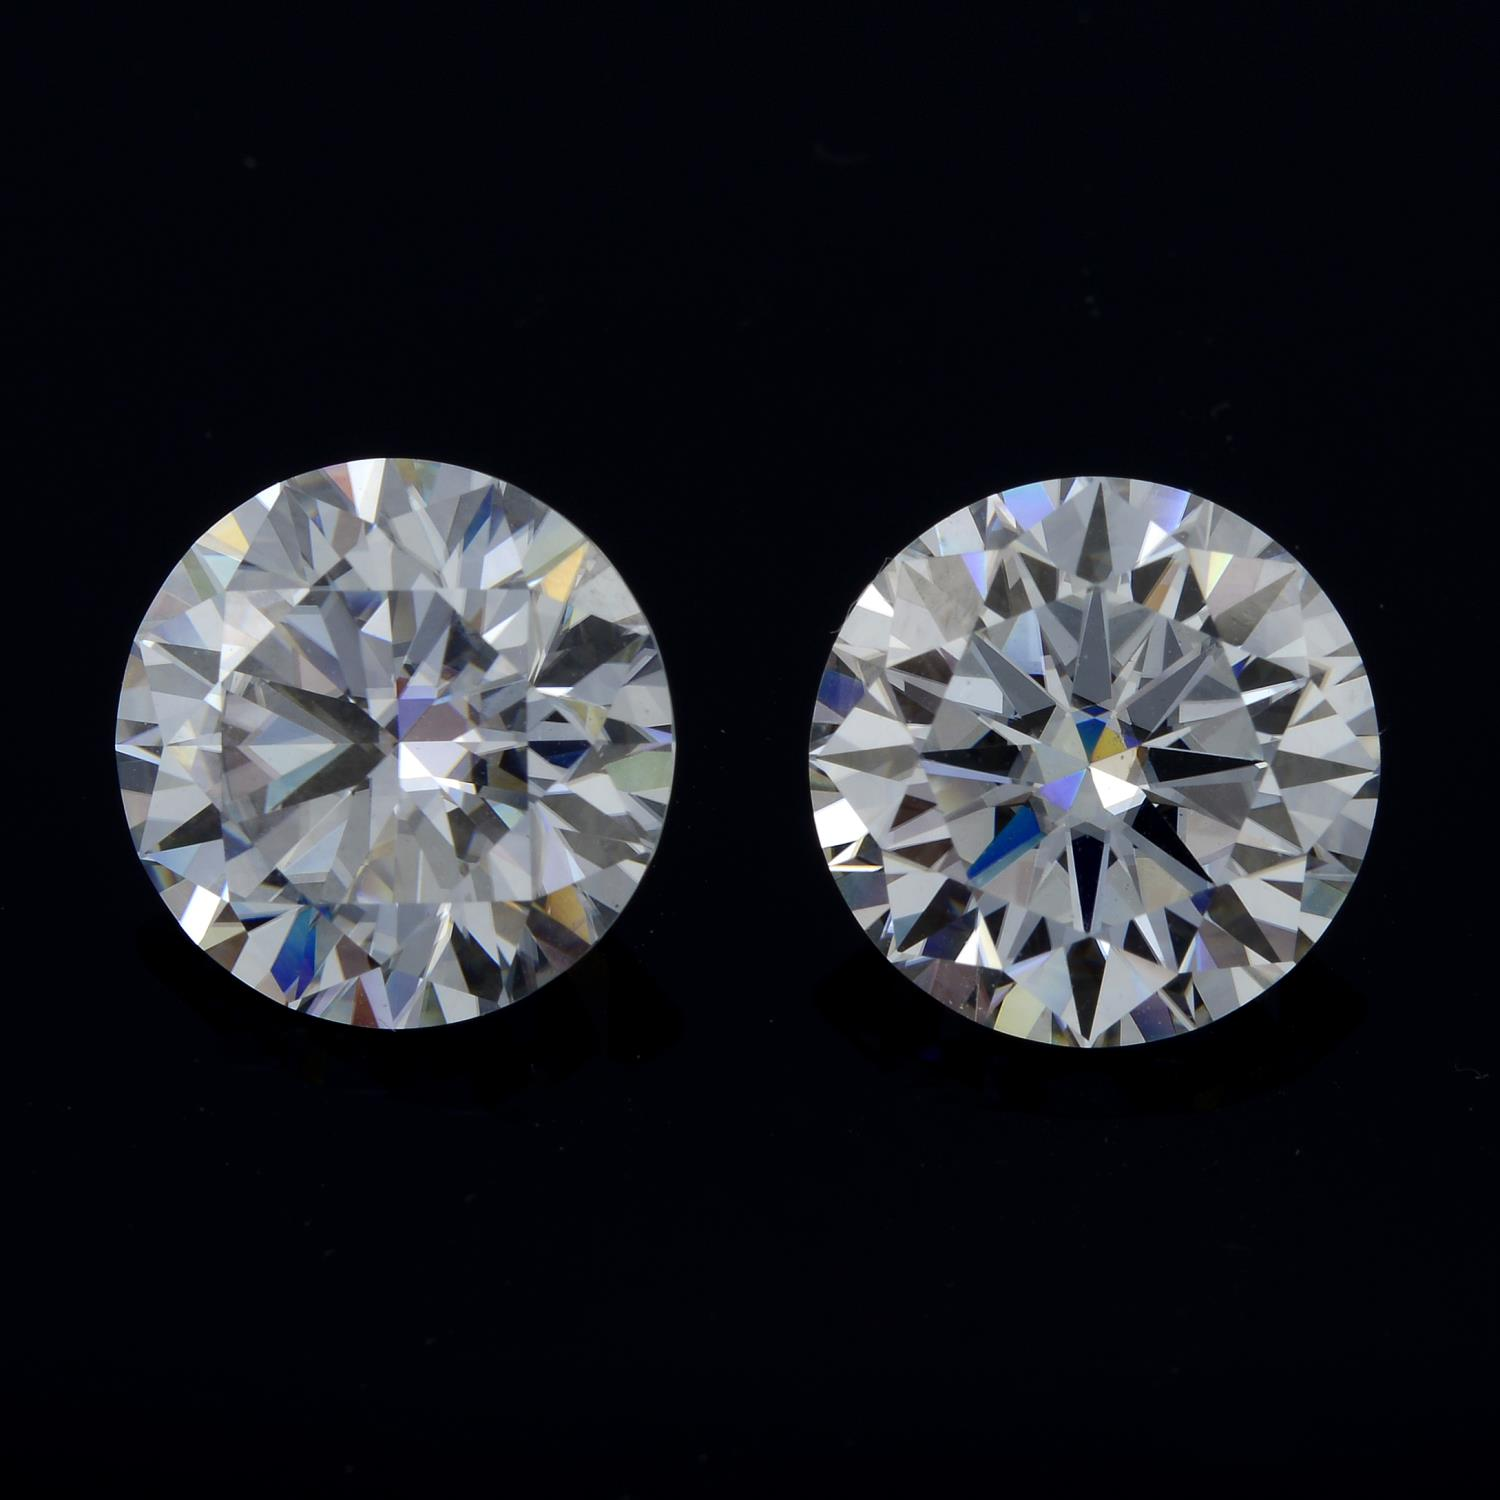 A pair of circular shape synthetic moissanite, weighing 7cts.